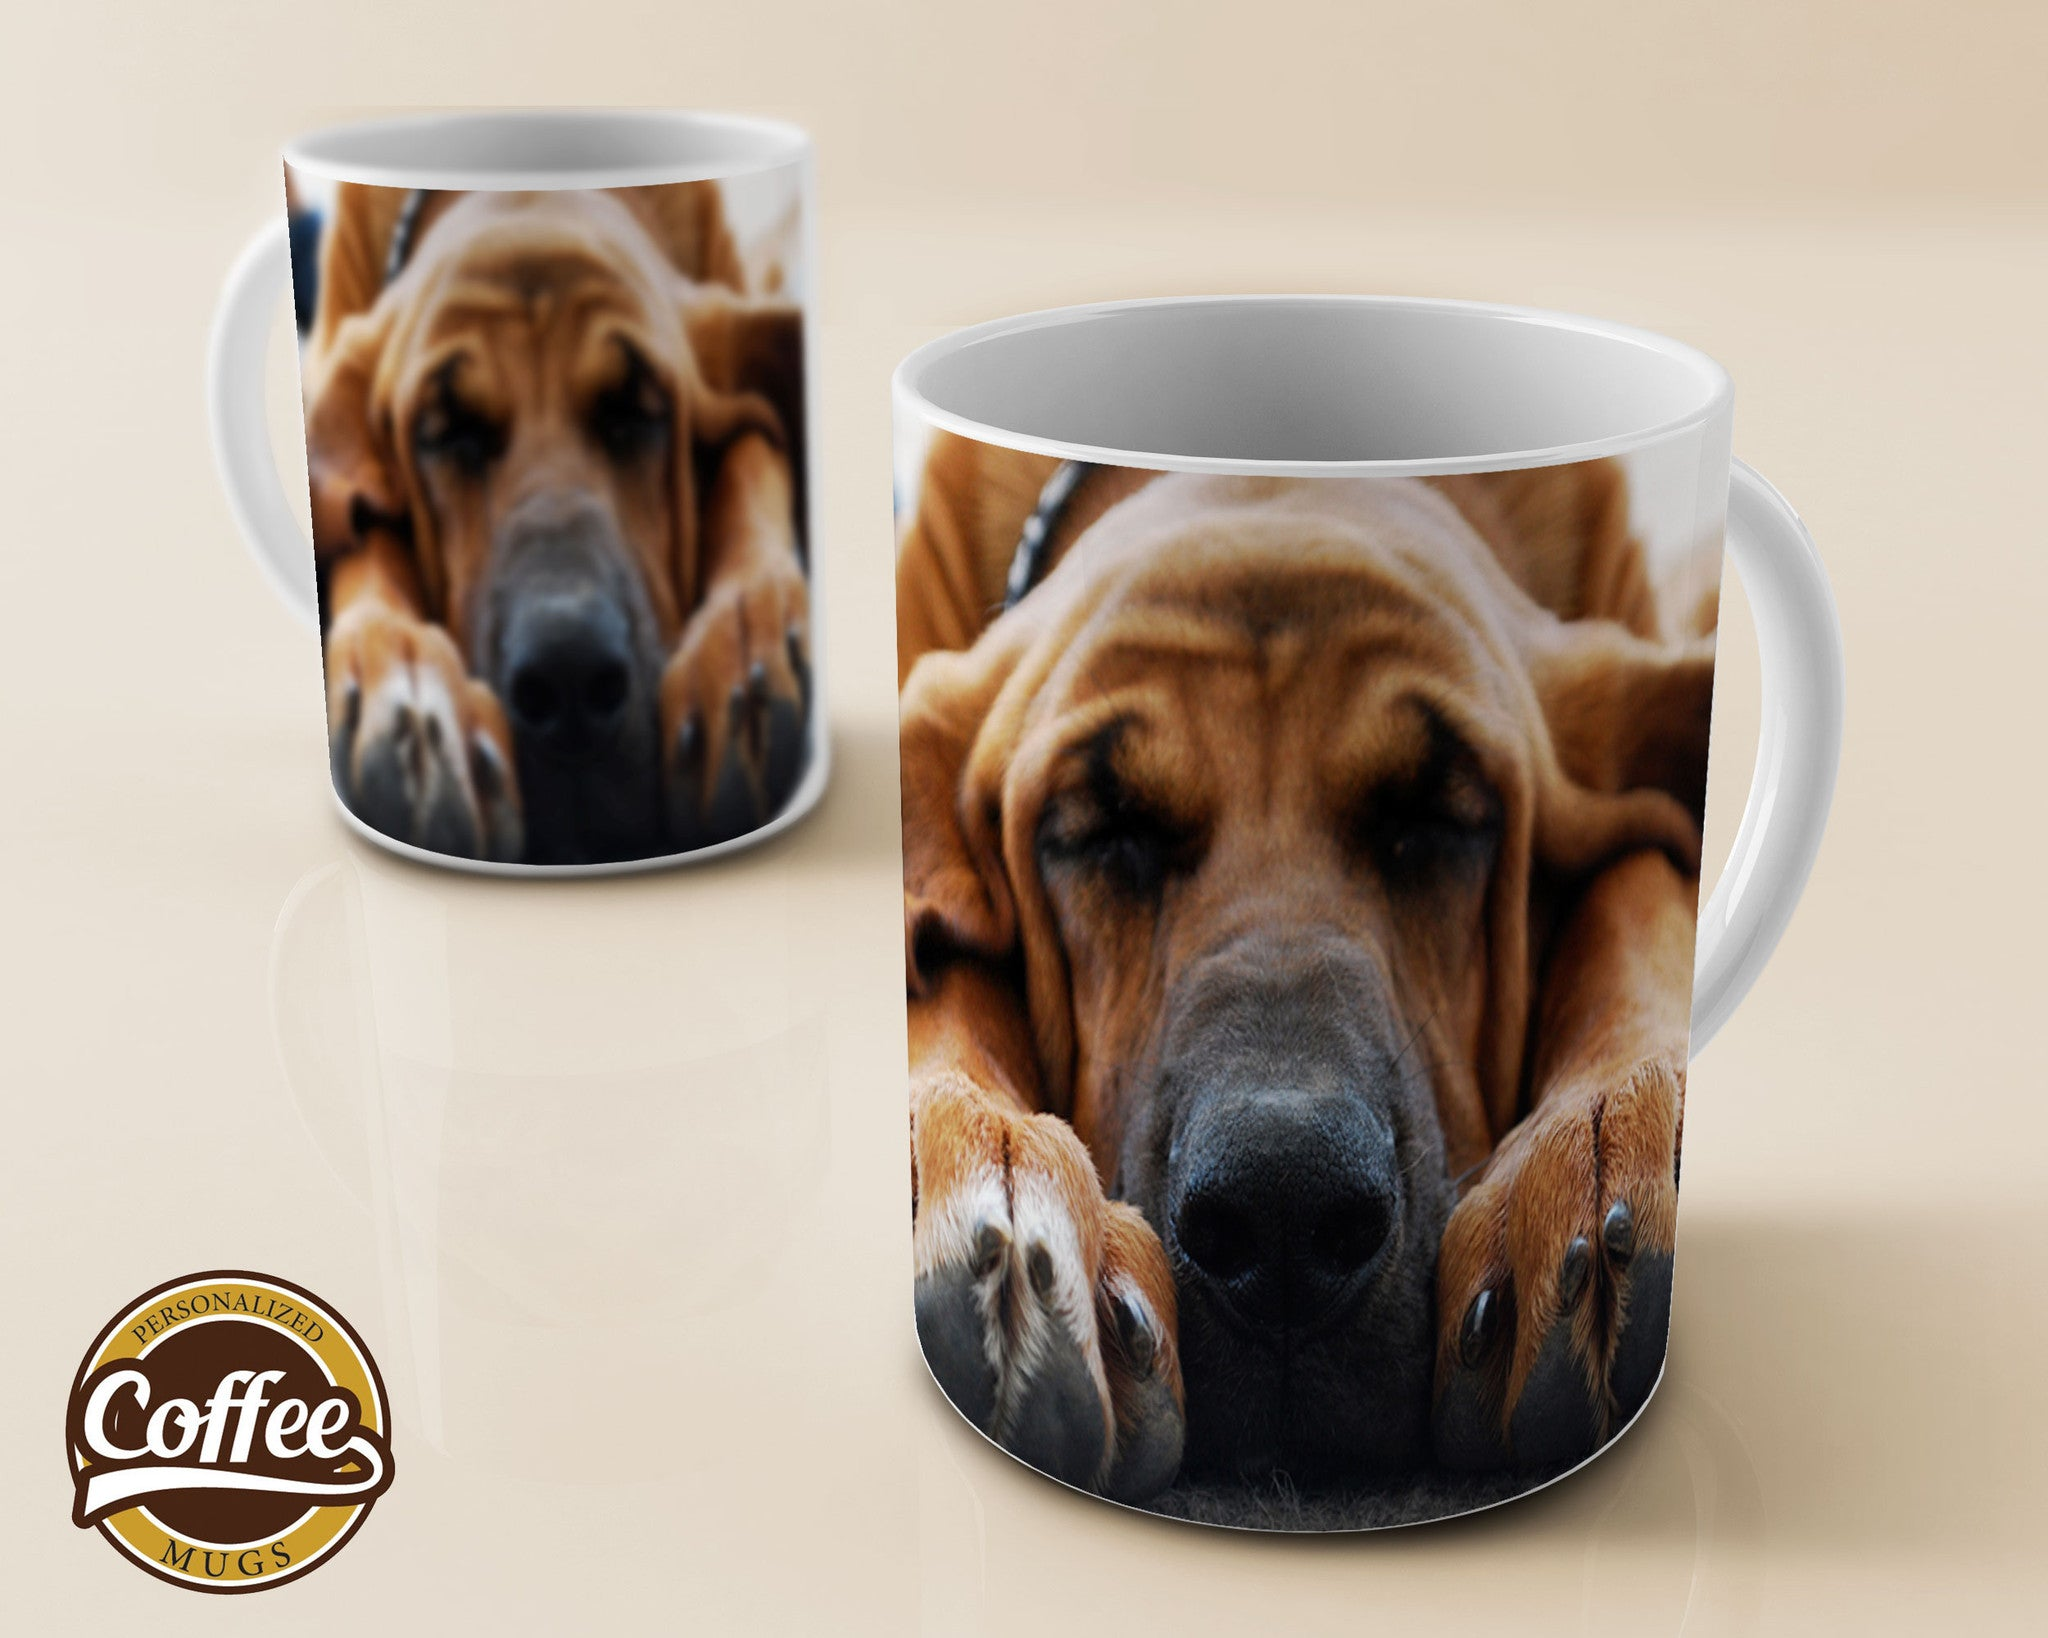 Custom Coffee Mugs - Funny Dogs - Basset Hound